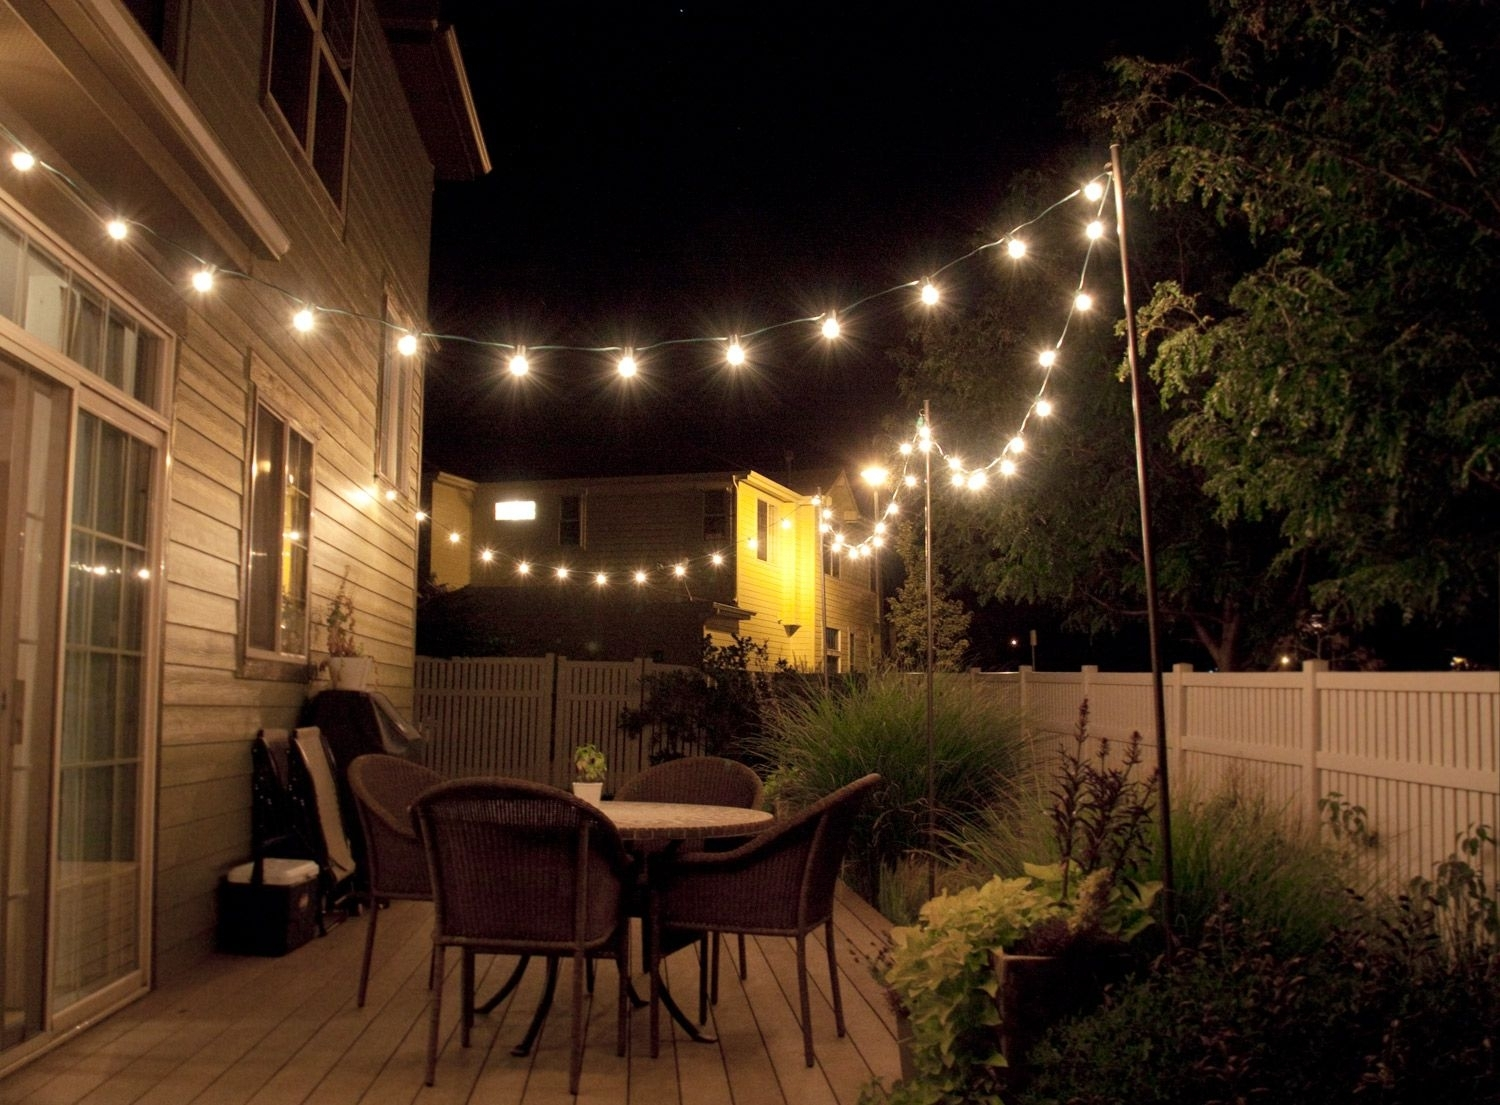 Bright July: {Diy}: Outdoor String Lights | Patio | Pinterest inside Outdoor Lanterns For Patio (Image 3 of 20)